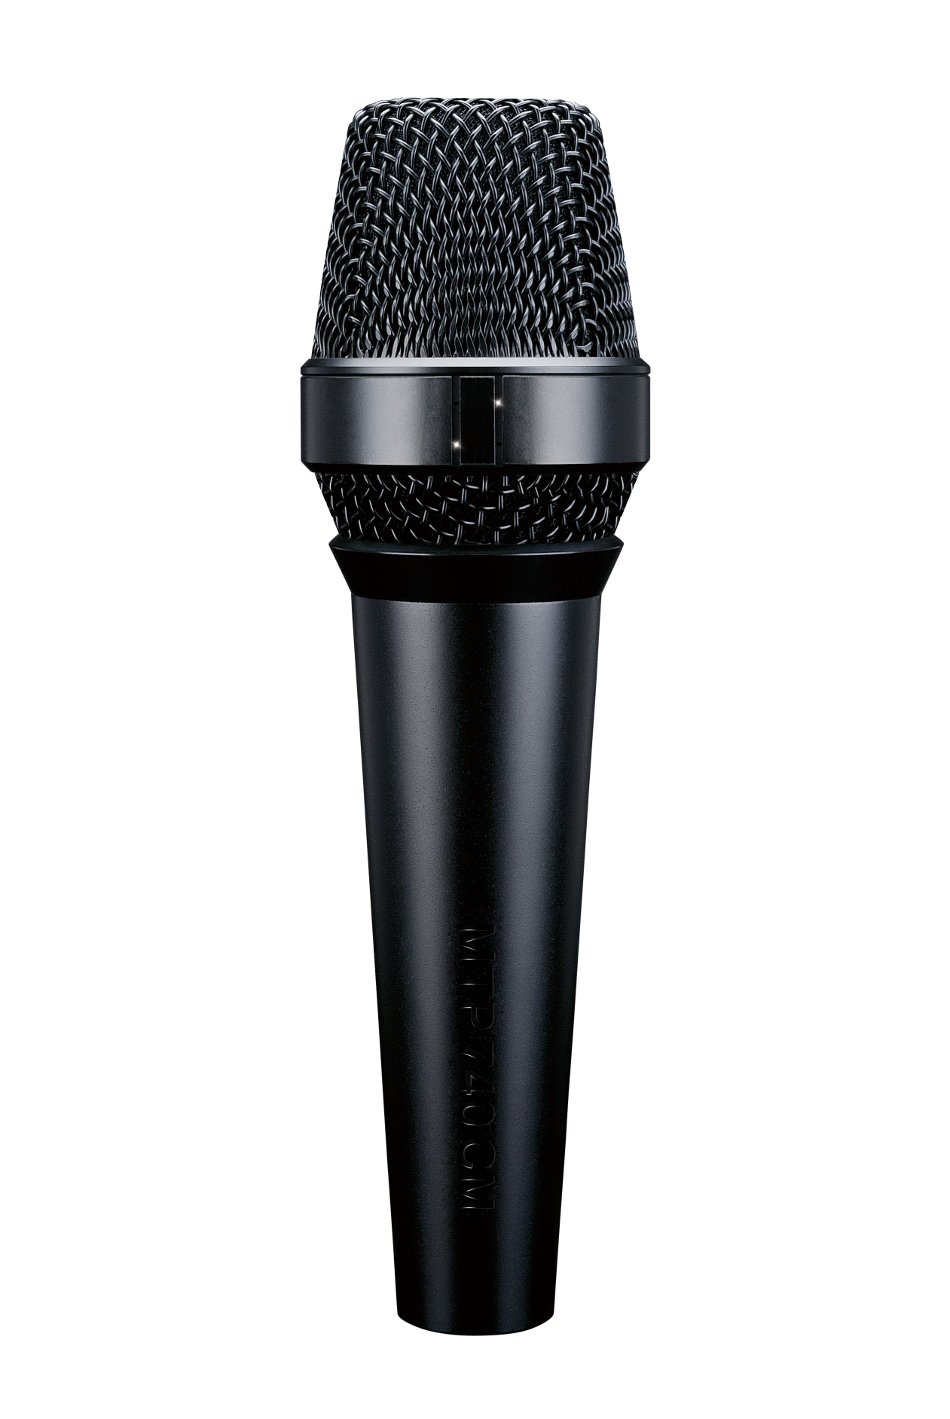 Handheld Condenser Vocal Microphone for Stage & Studio